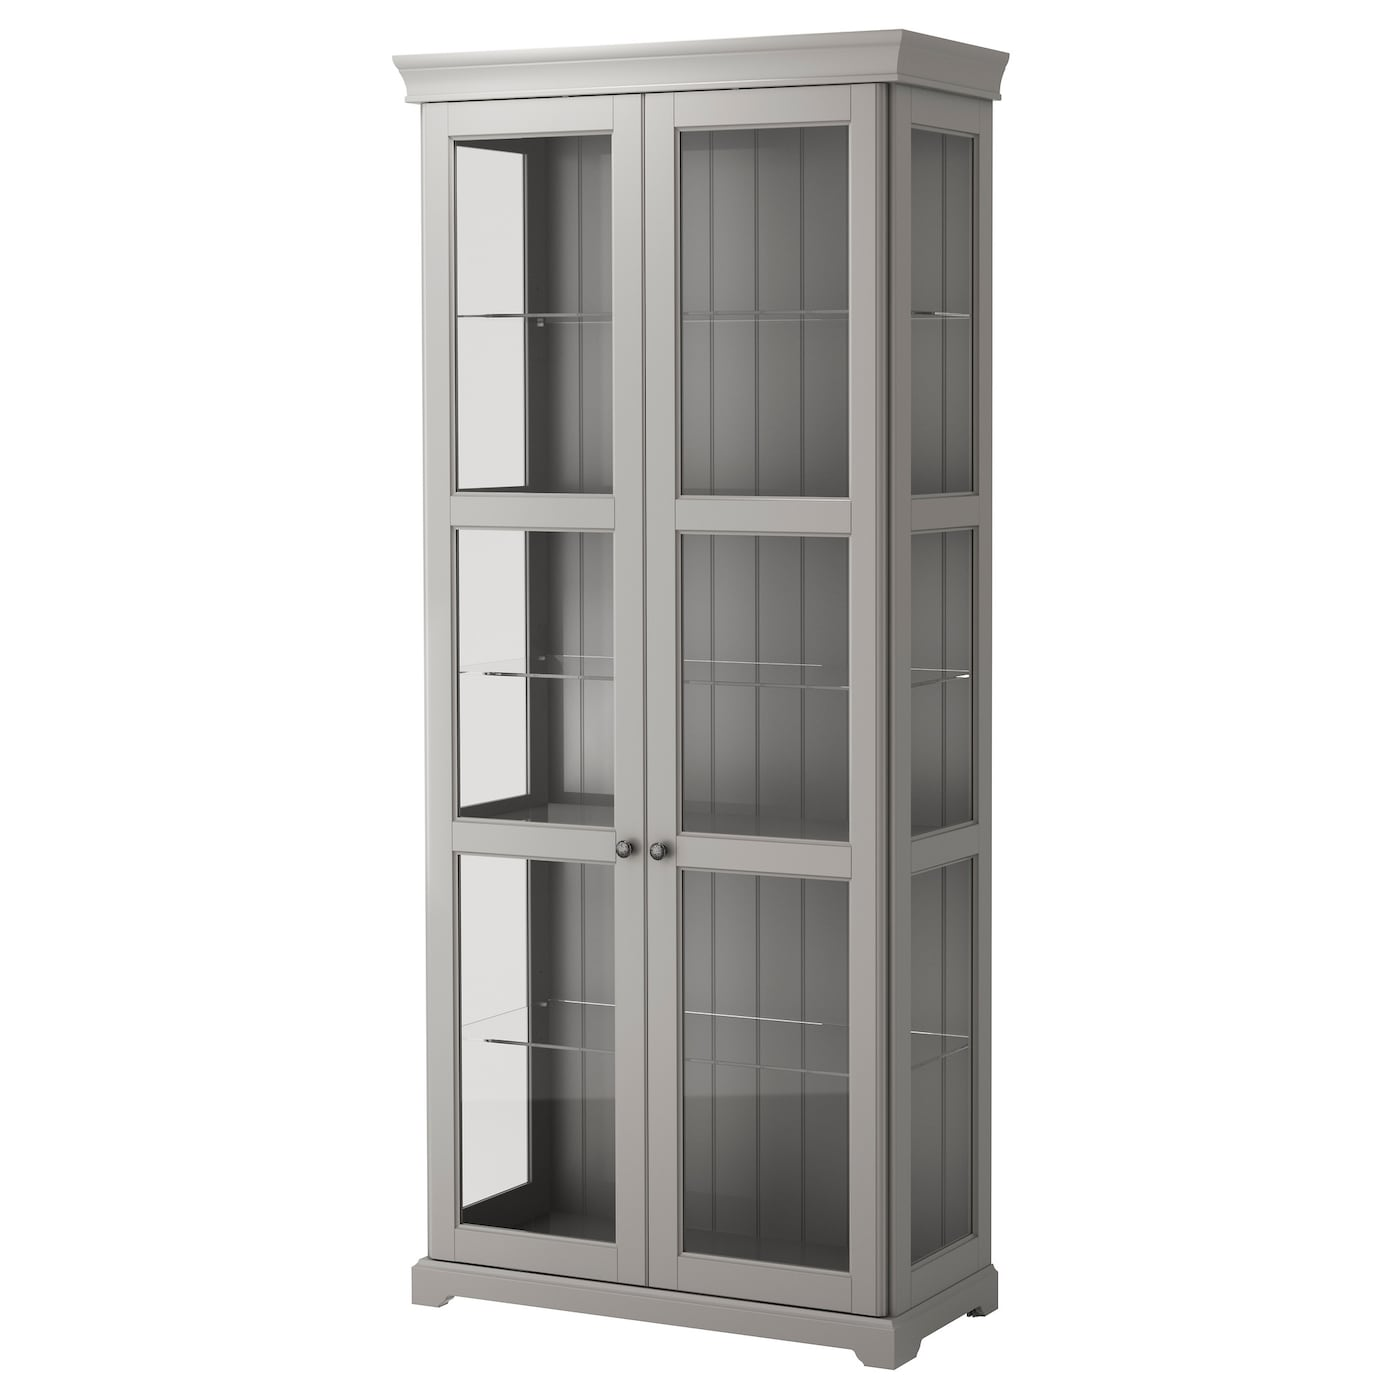 Glass Cabinet Doors : Liatorp glass door cabinet grey cm ikea